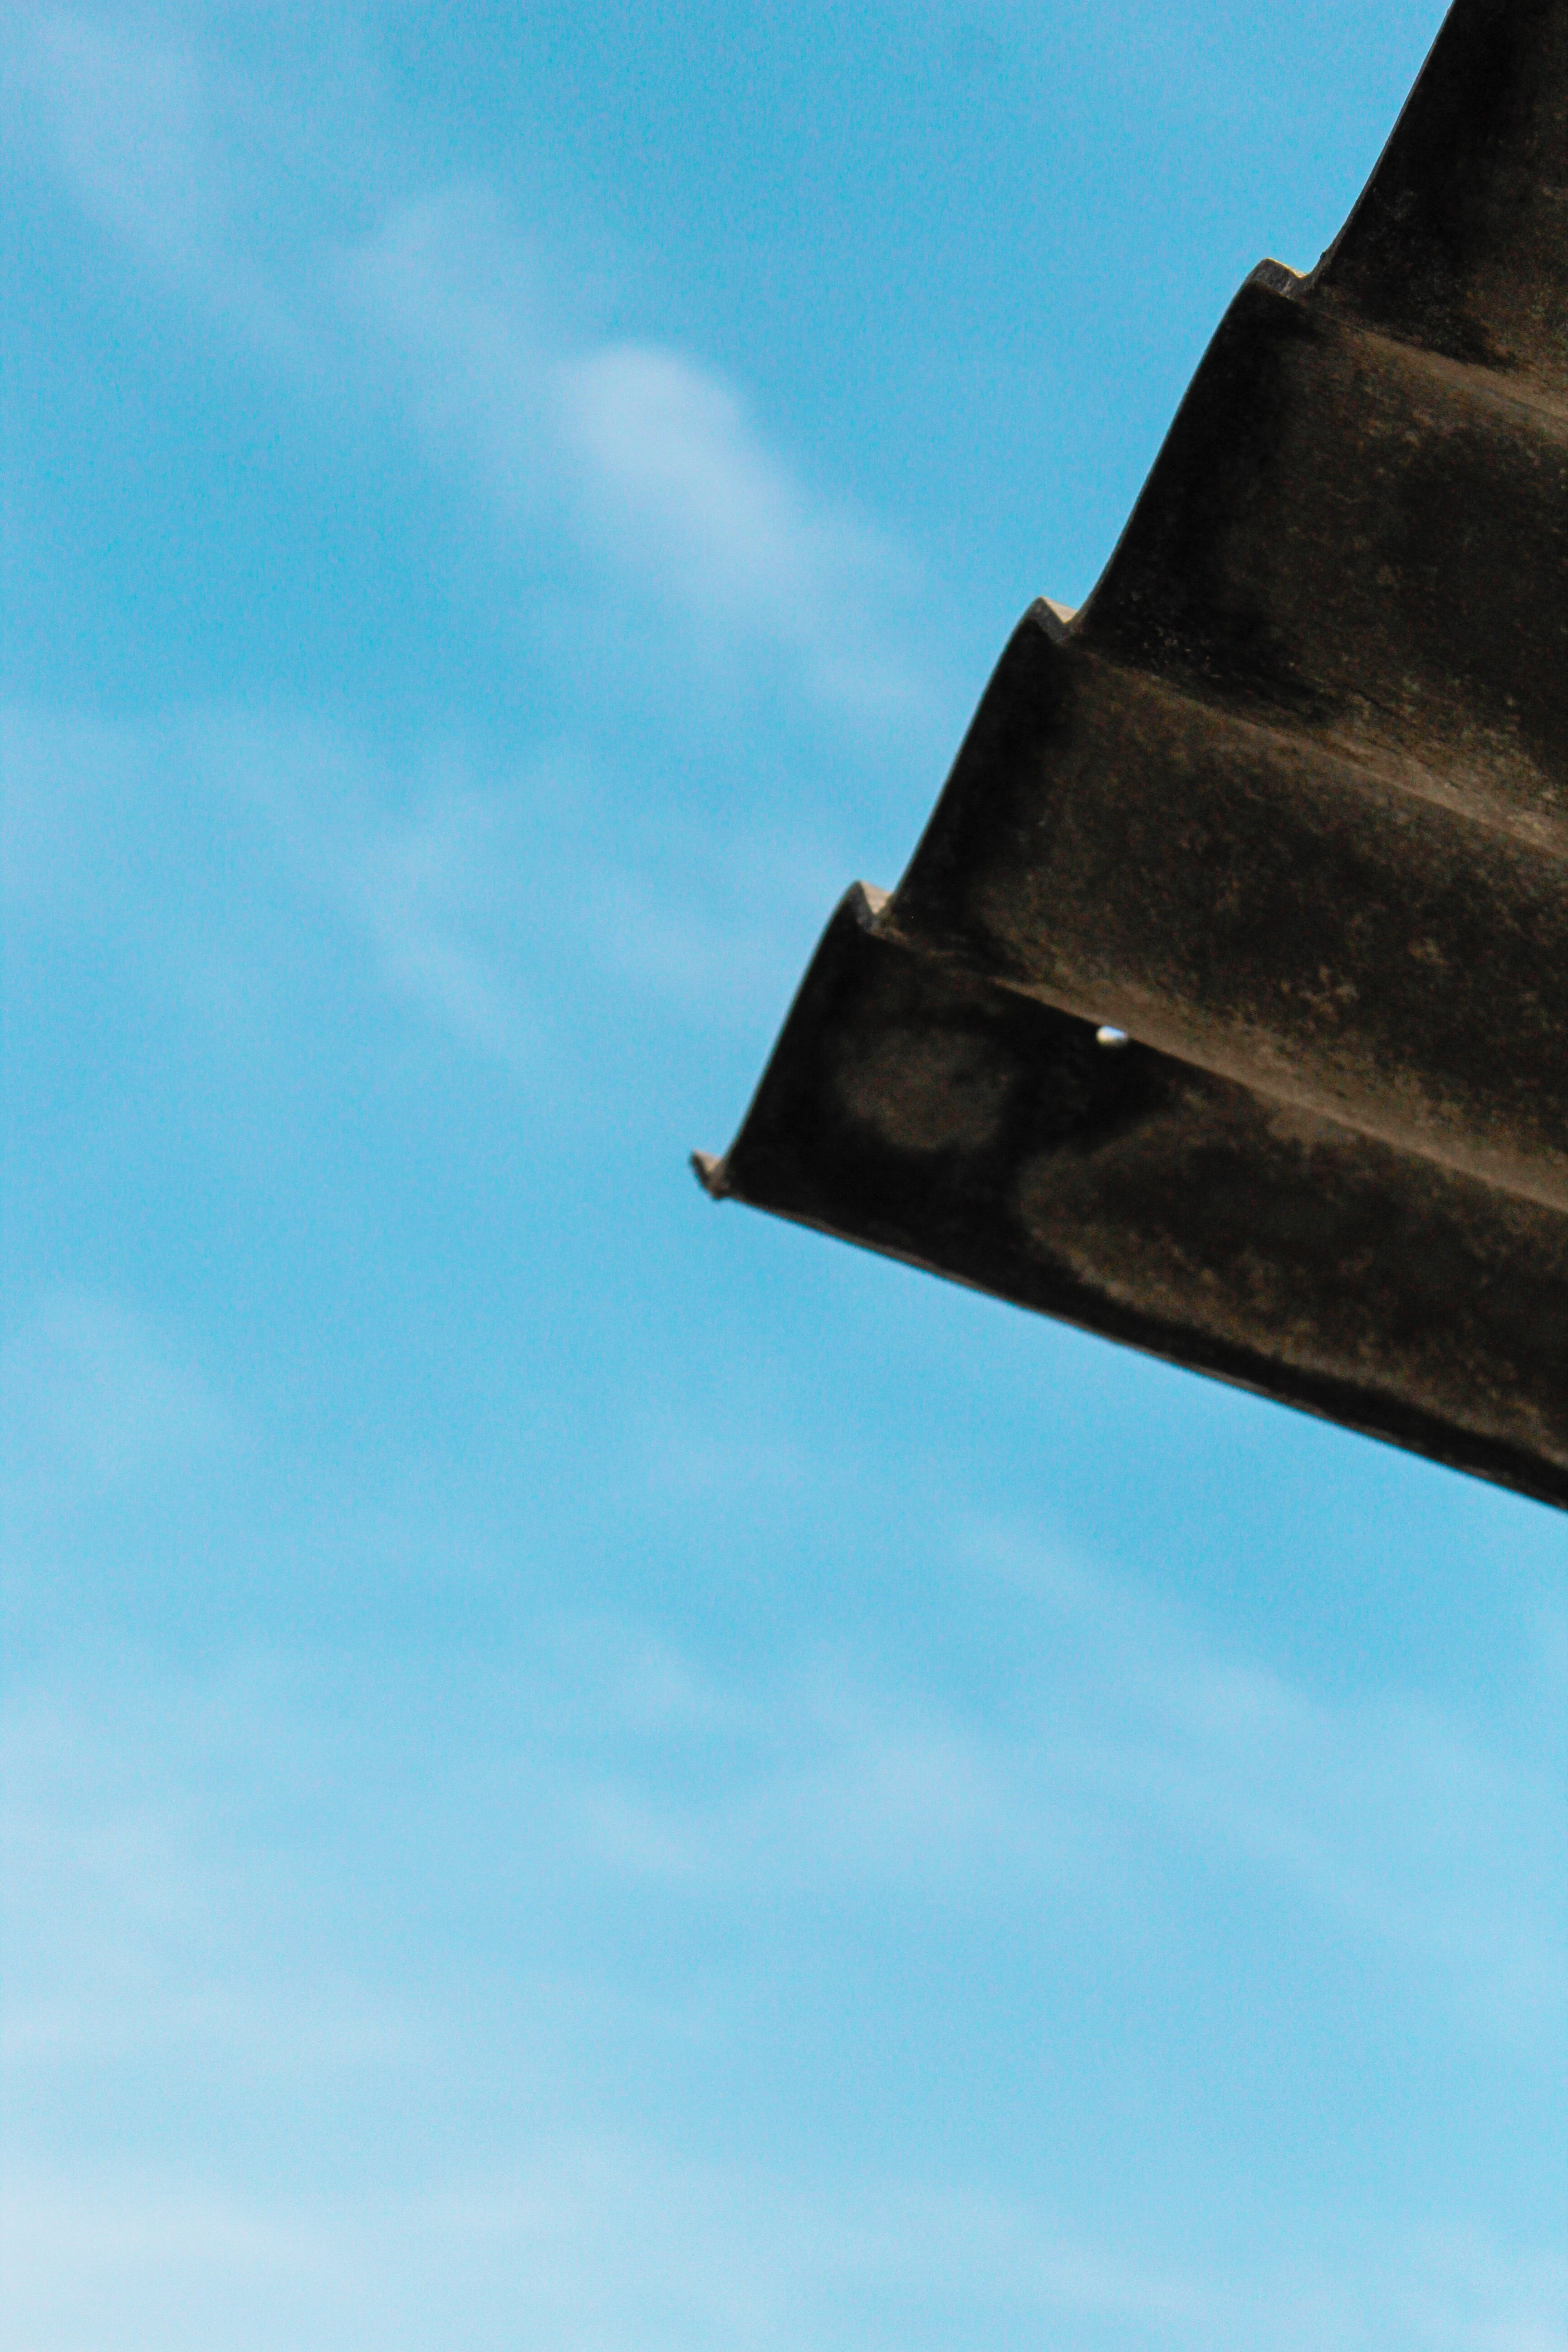 Free stock photo of blue sky, cowshed